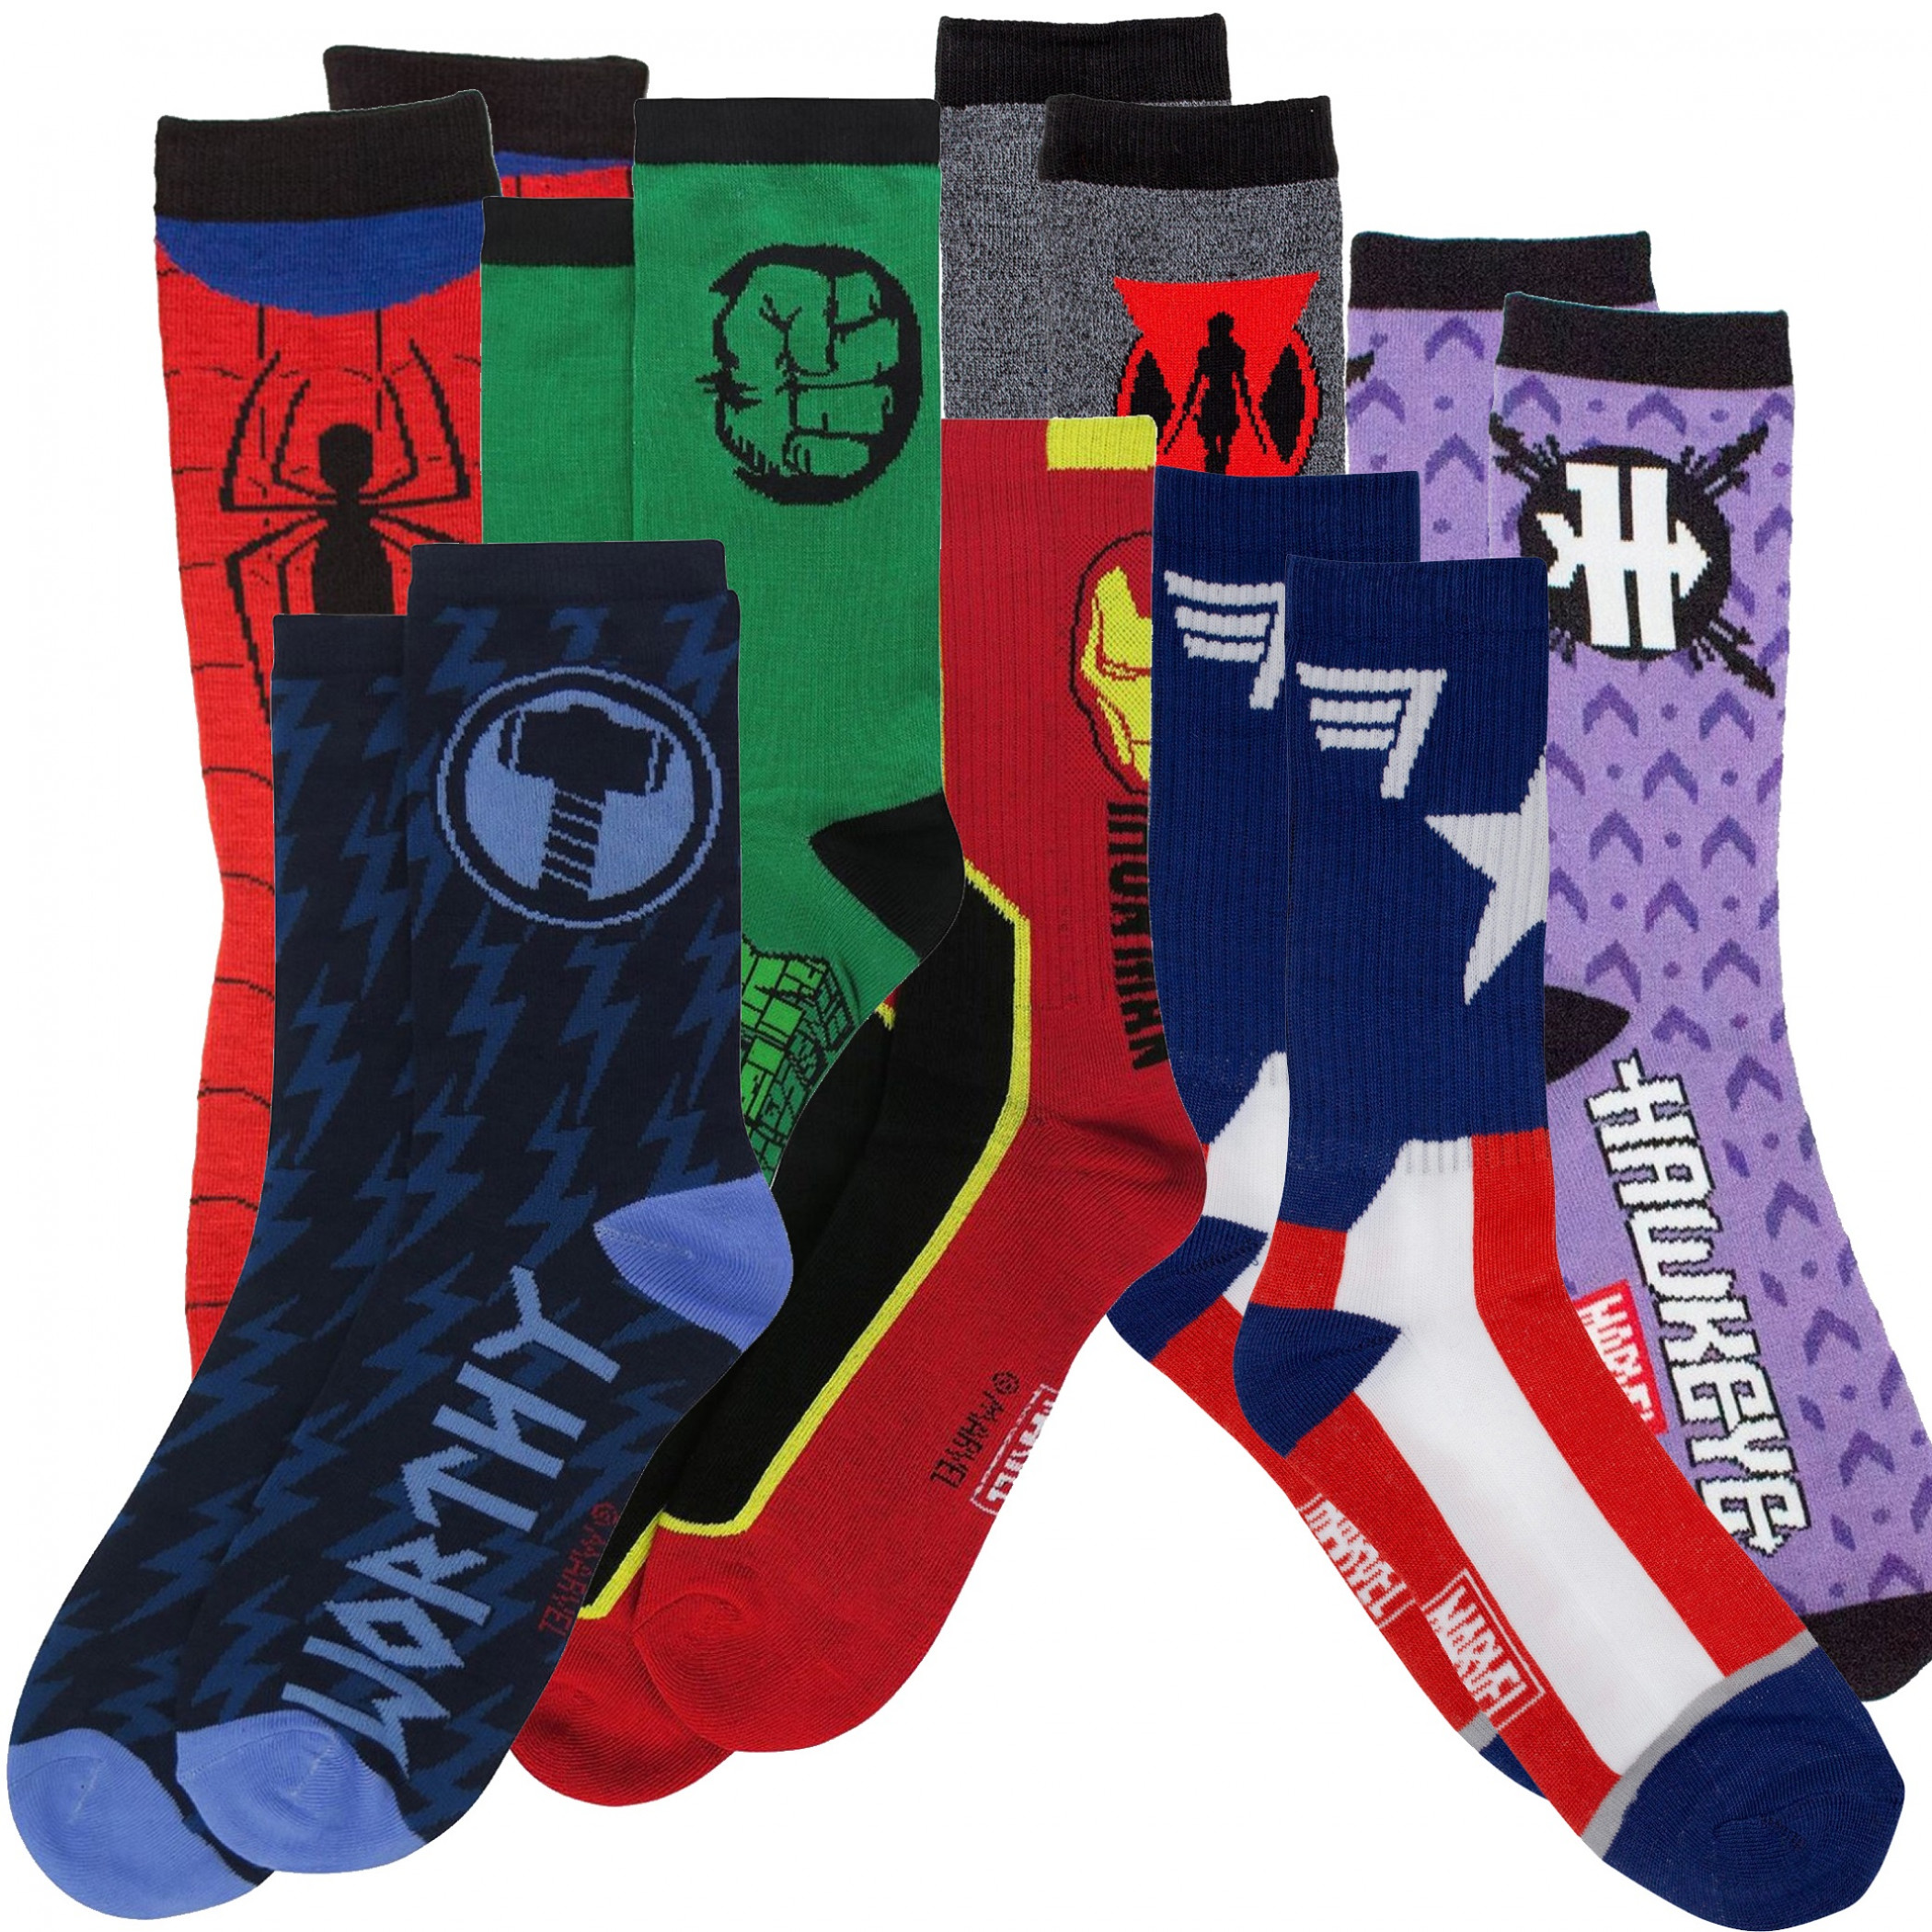 Avengers Original Movie Line-Up 7-Pack of Crew Socks